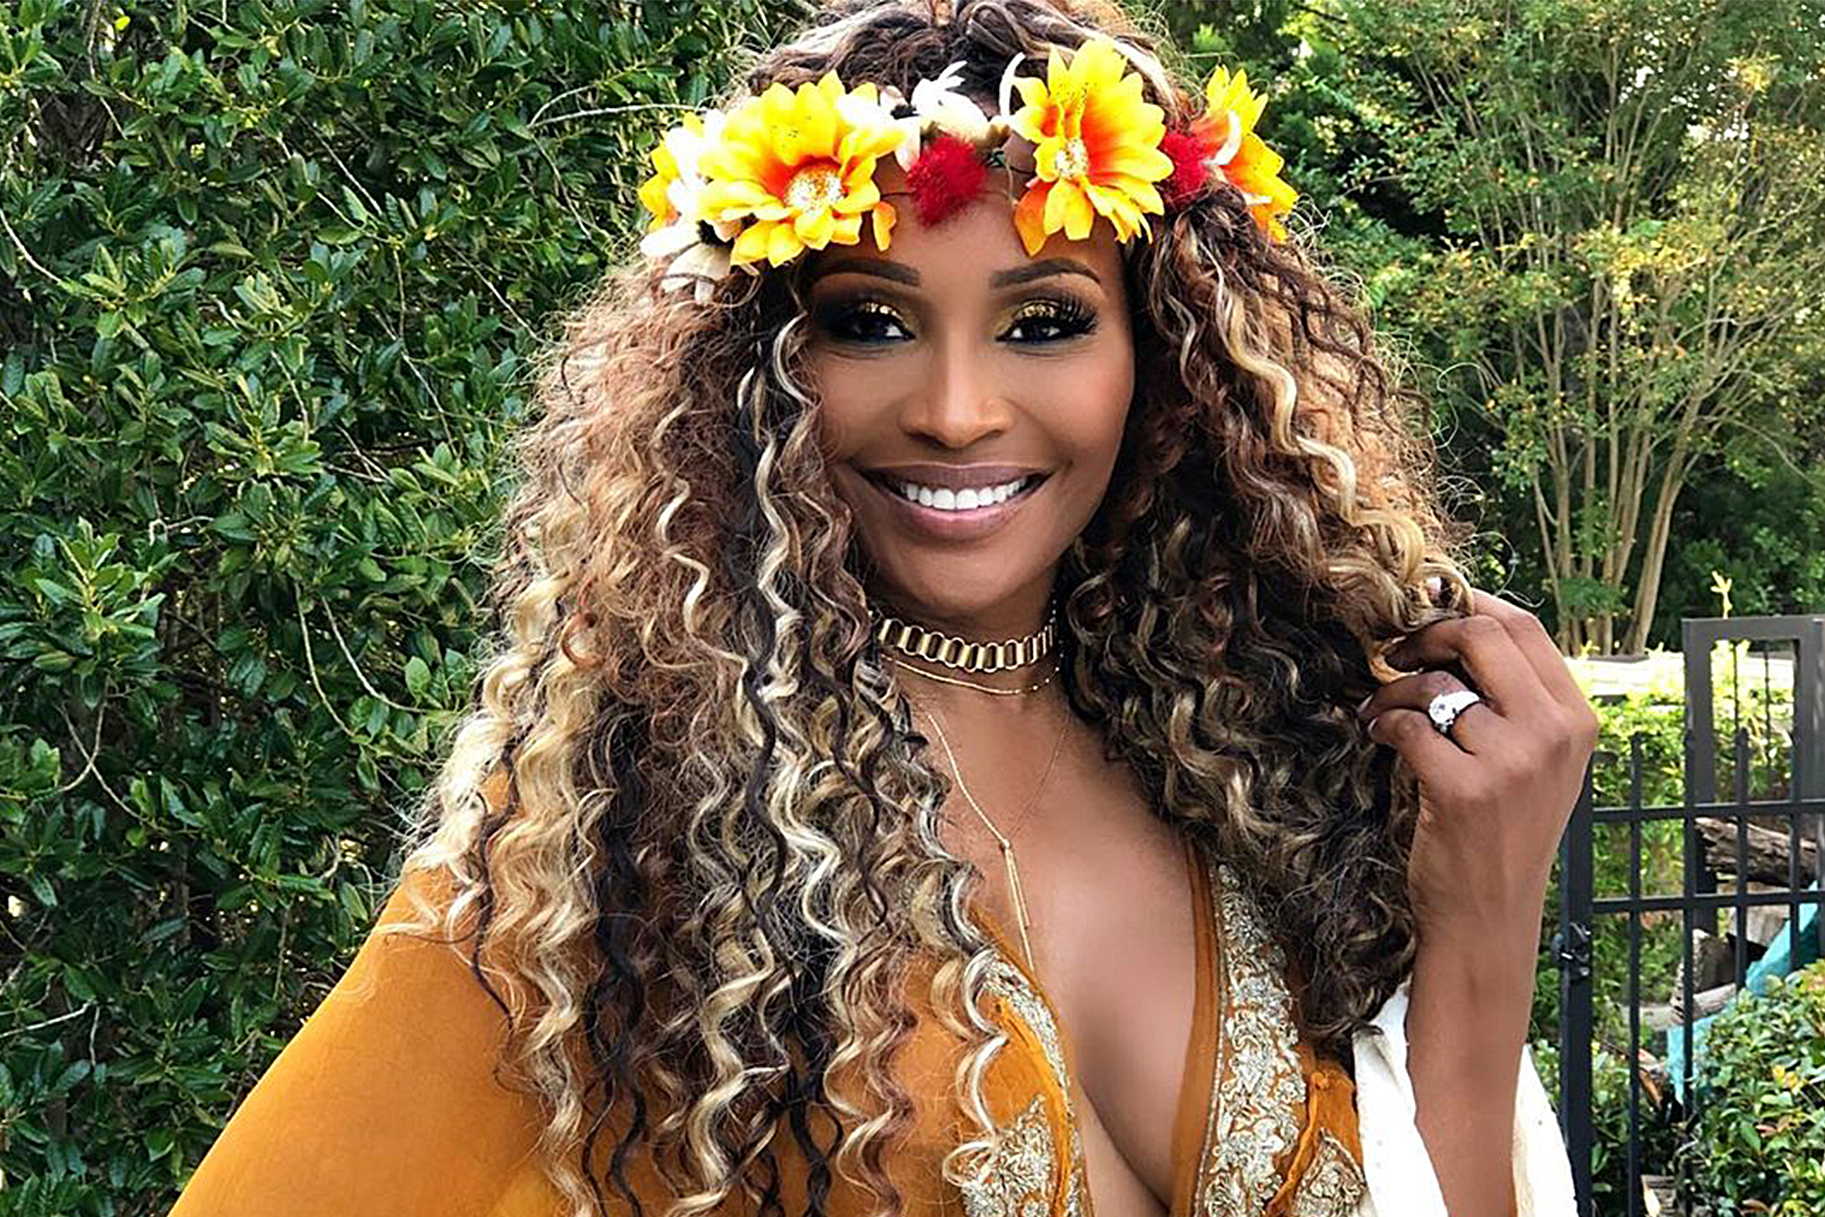 Cynthia Bailey Is Grateful To All The Healthcare Workers Who Are Helping People These Days - See Her Emotional Video